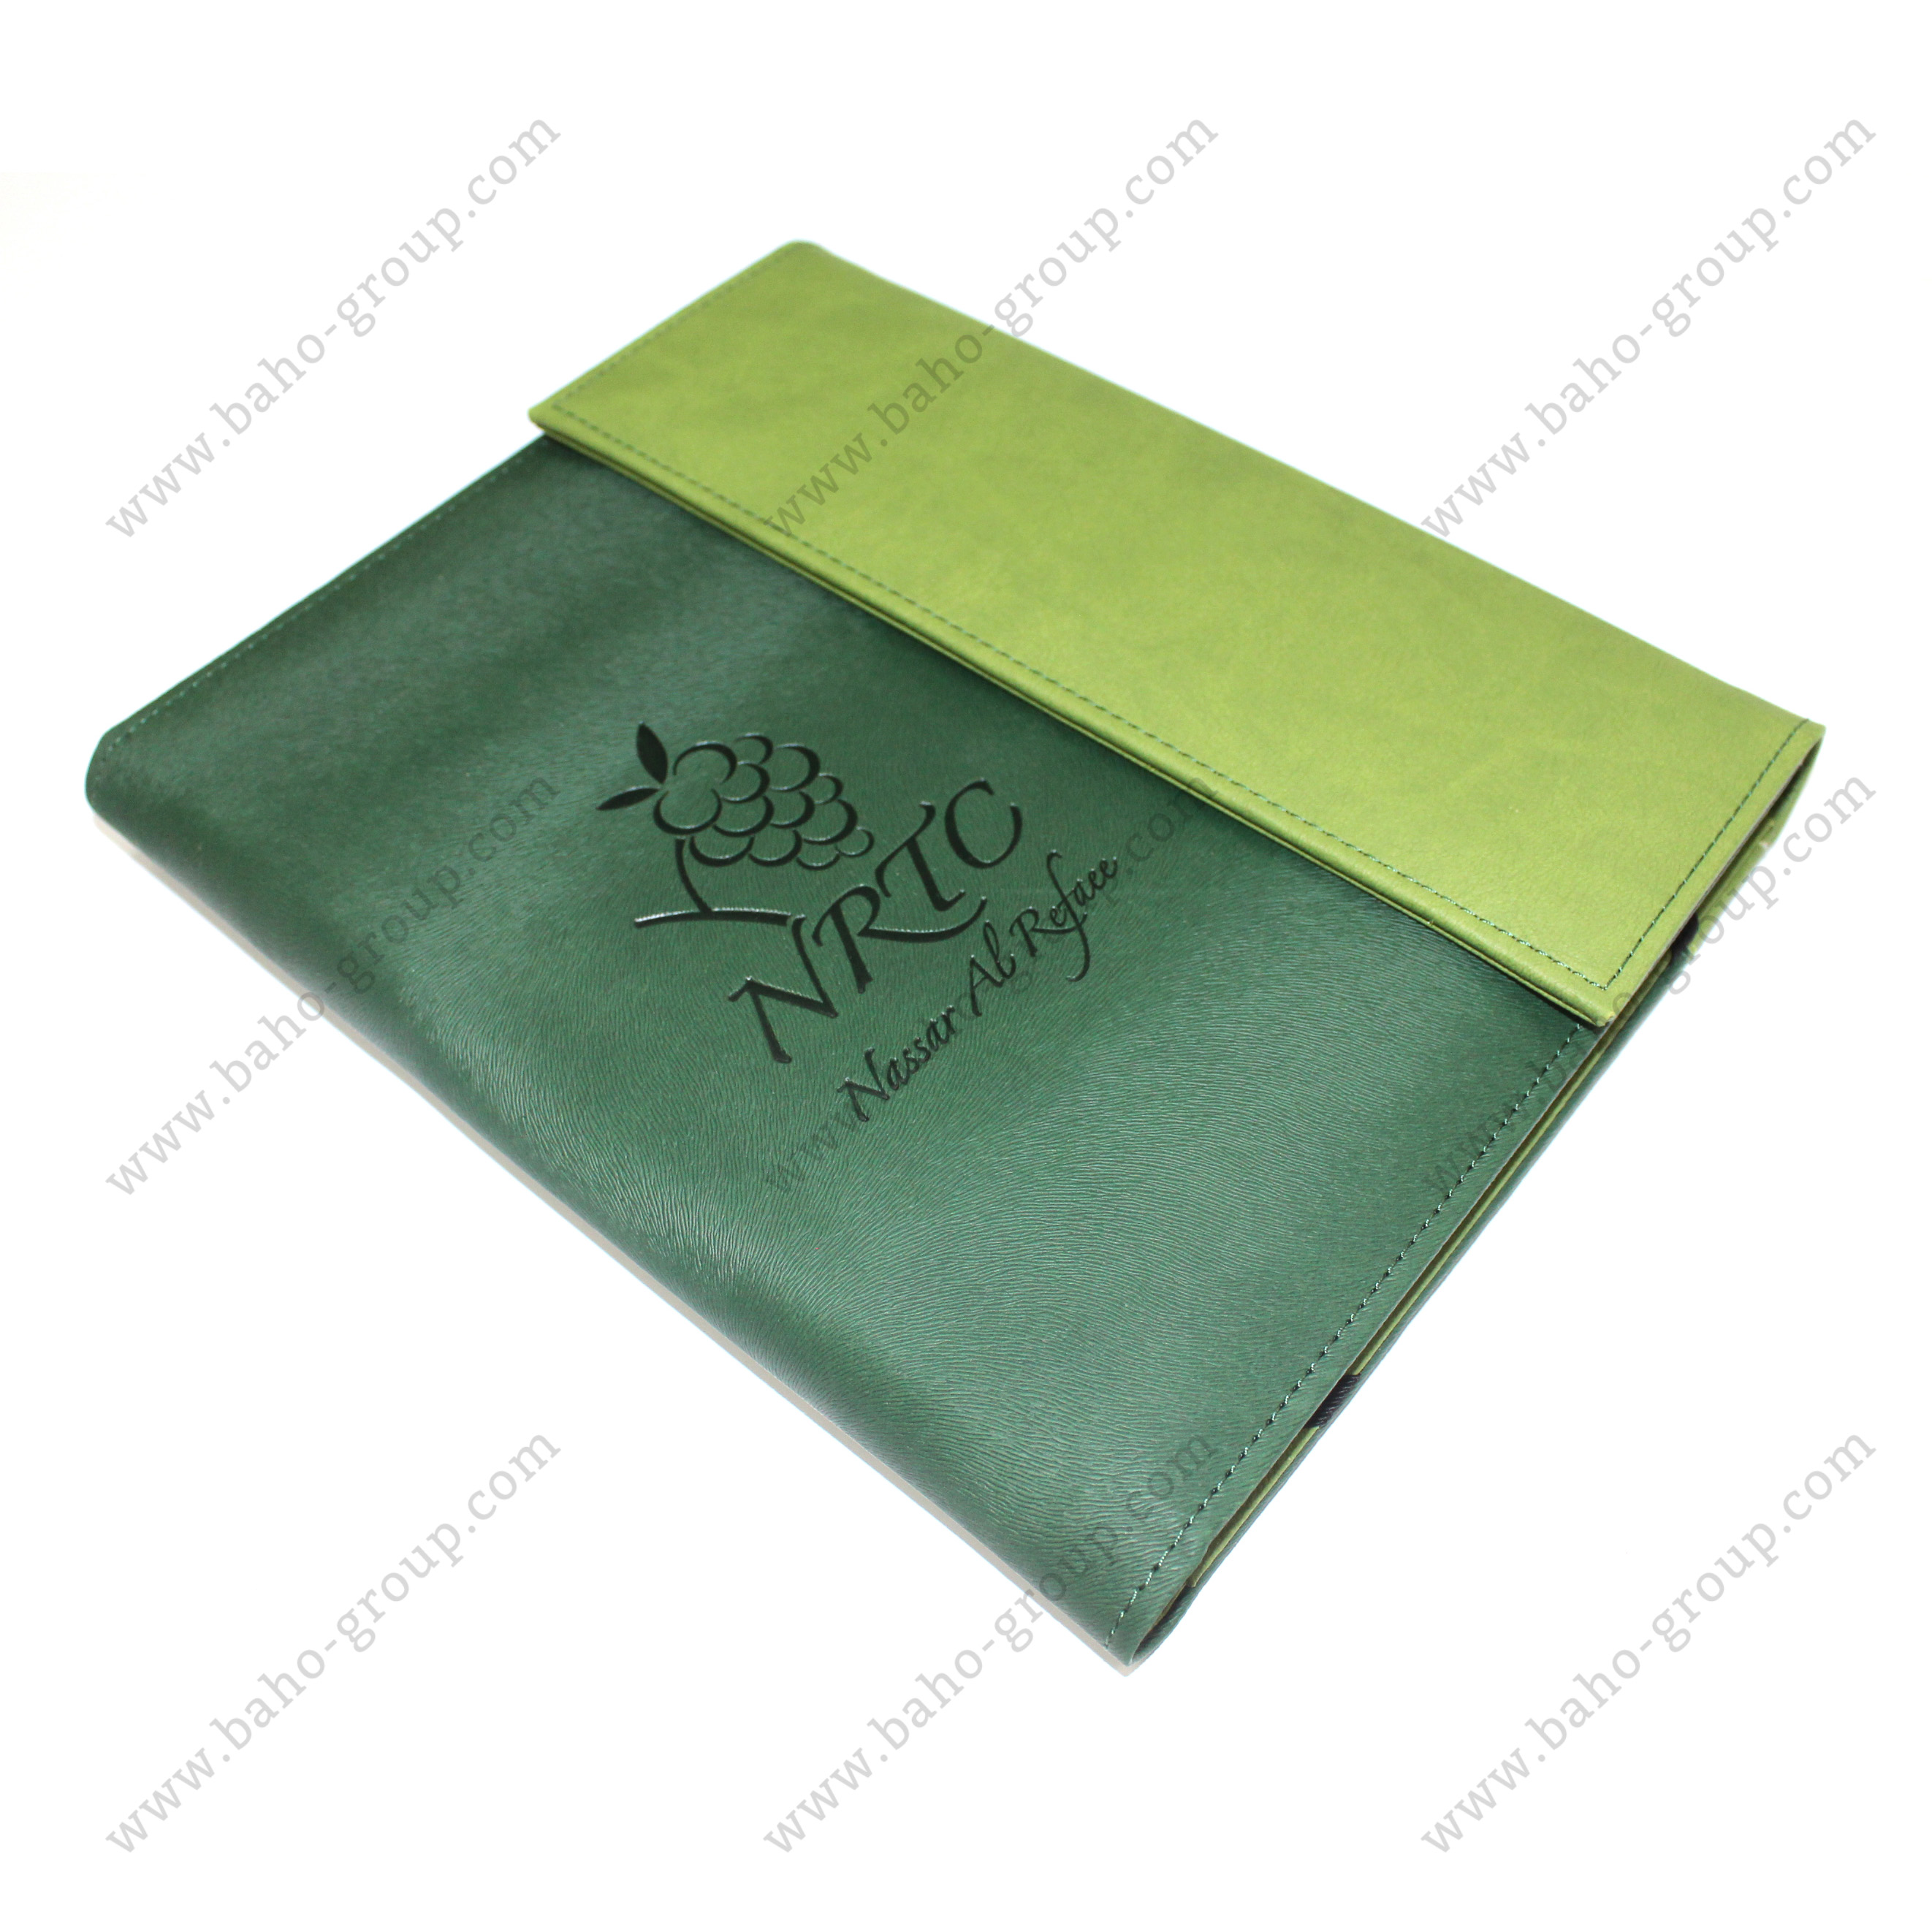 NRTC PU Leather iPad Cover